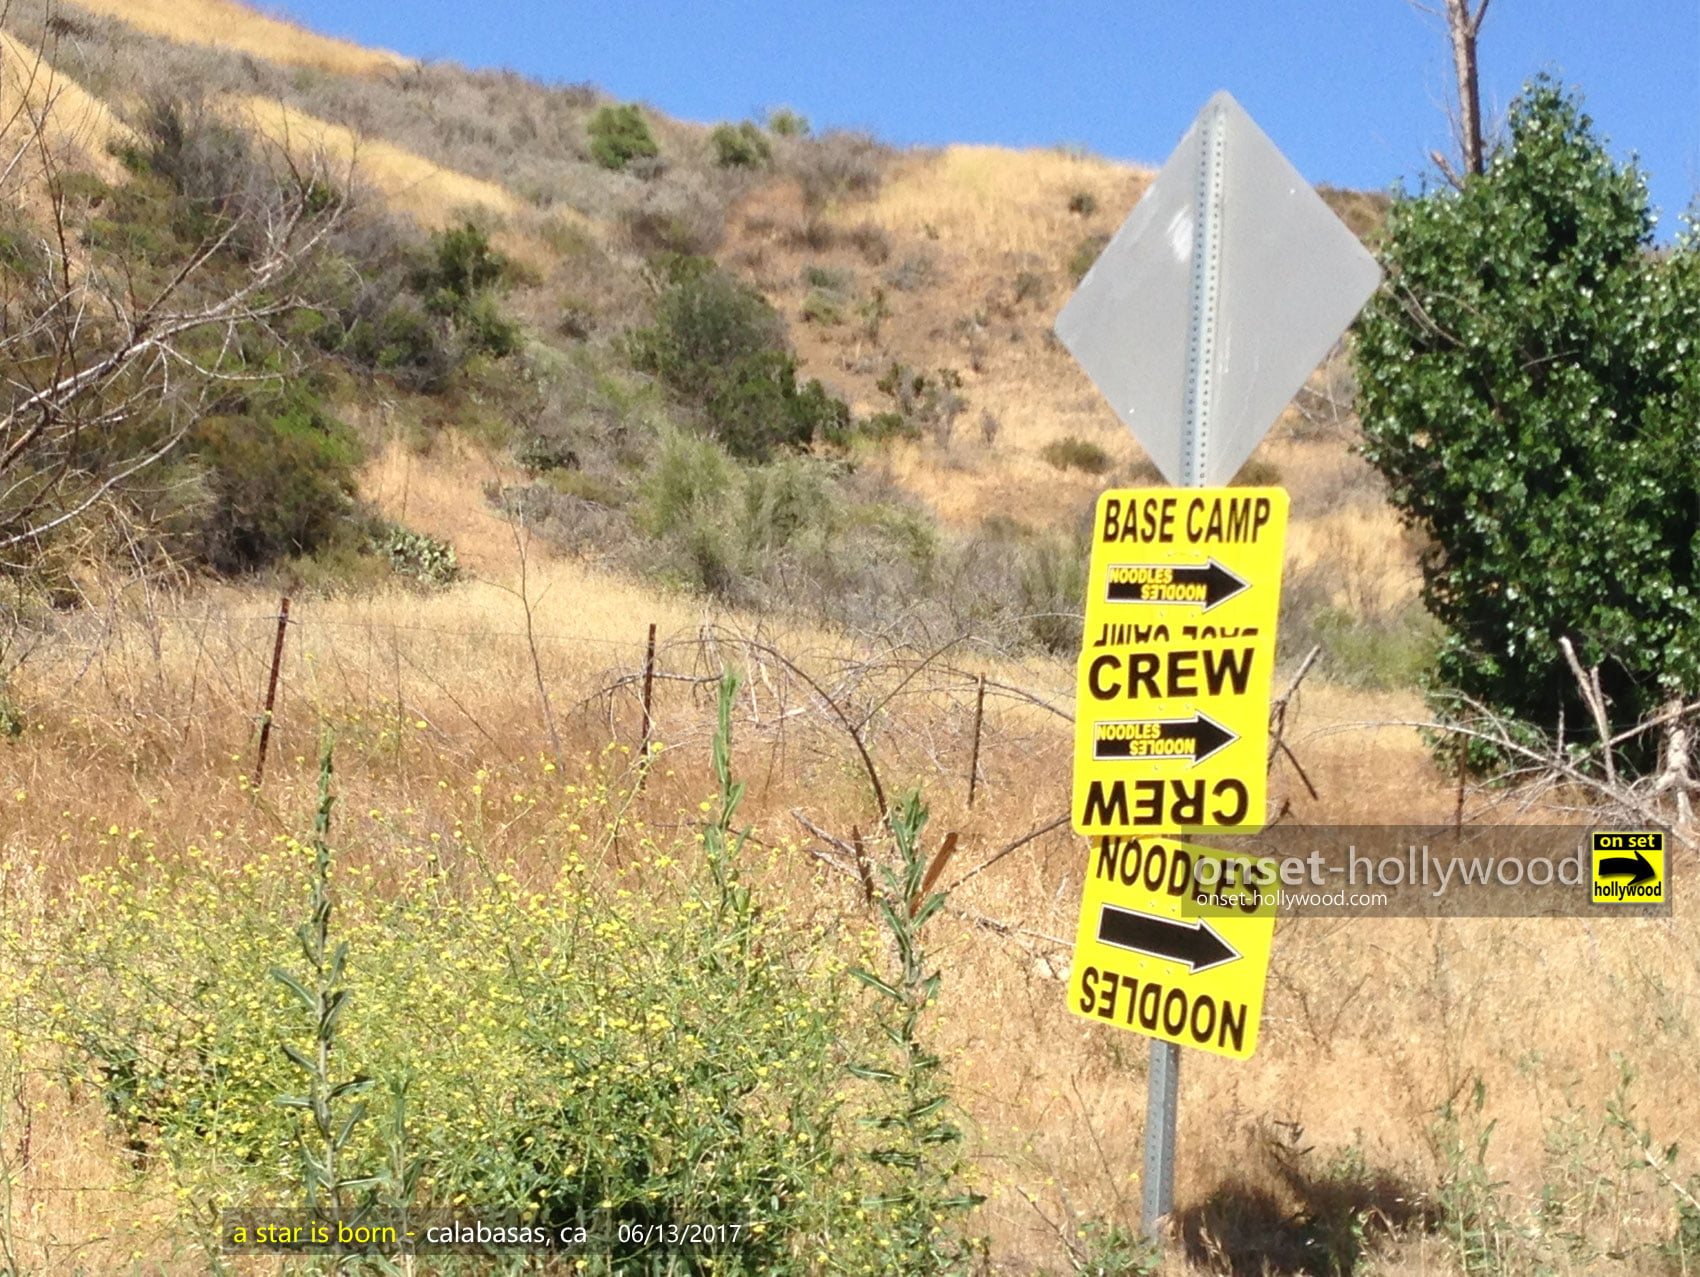 a-star-is-born-filming-locations-calabasas-diamond-x-1